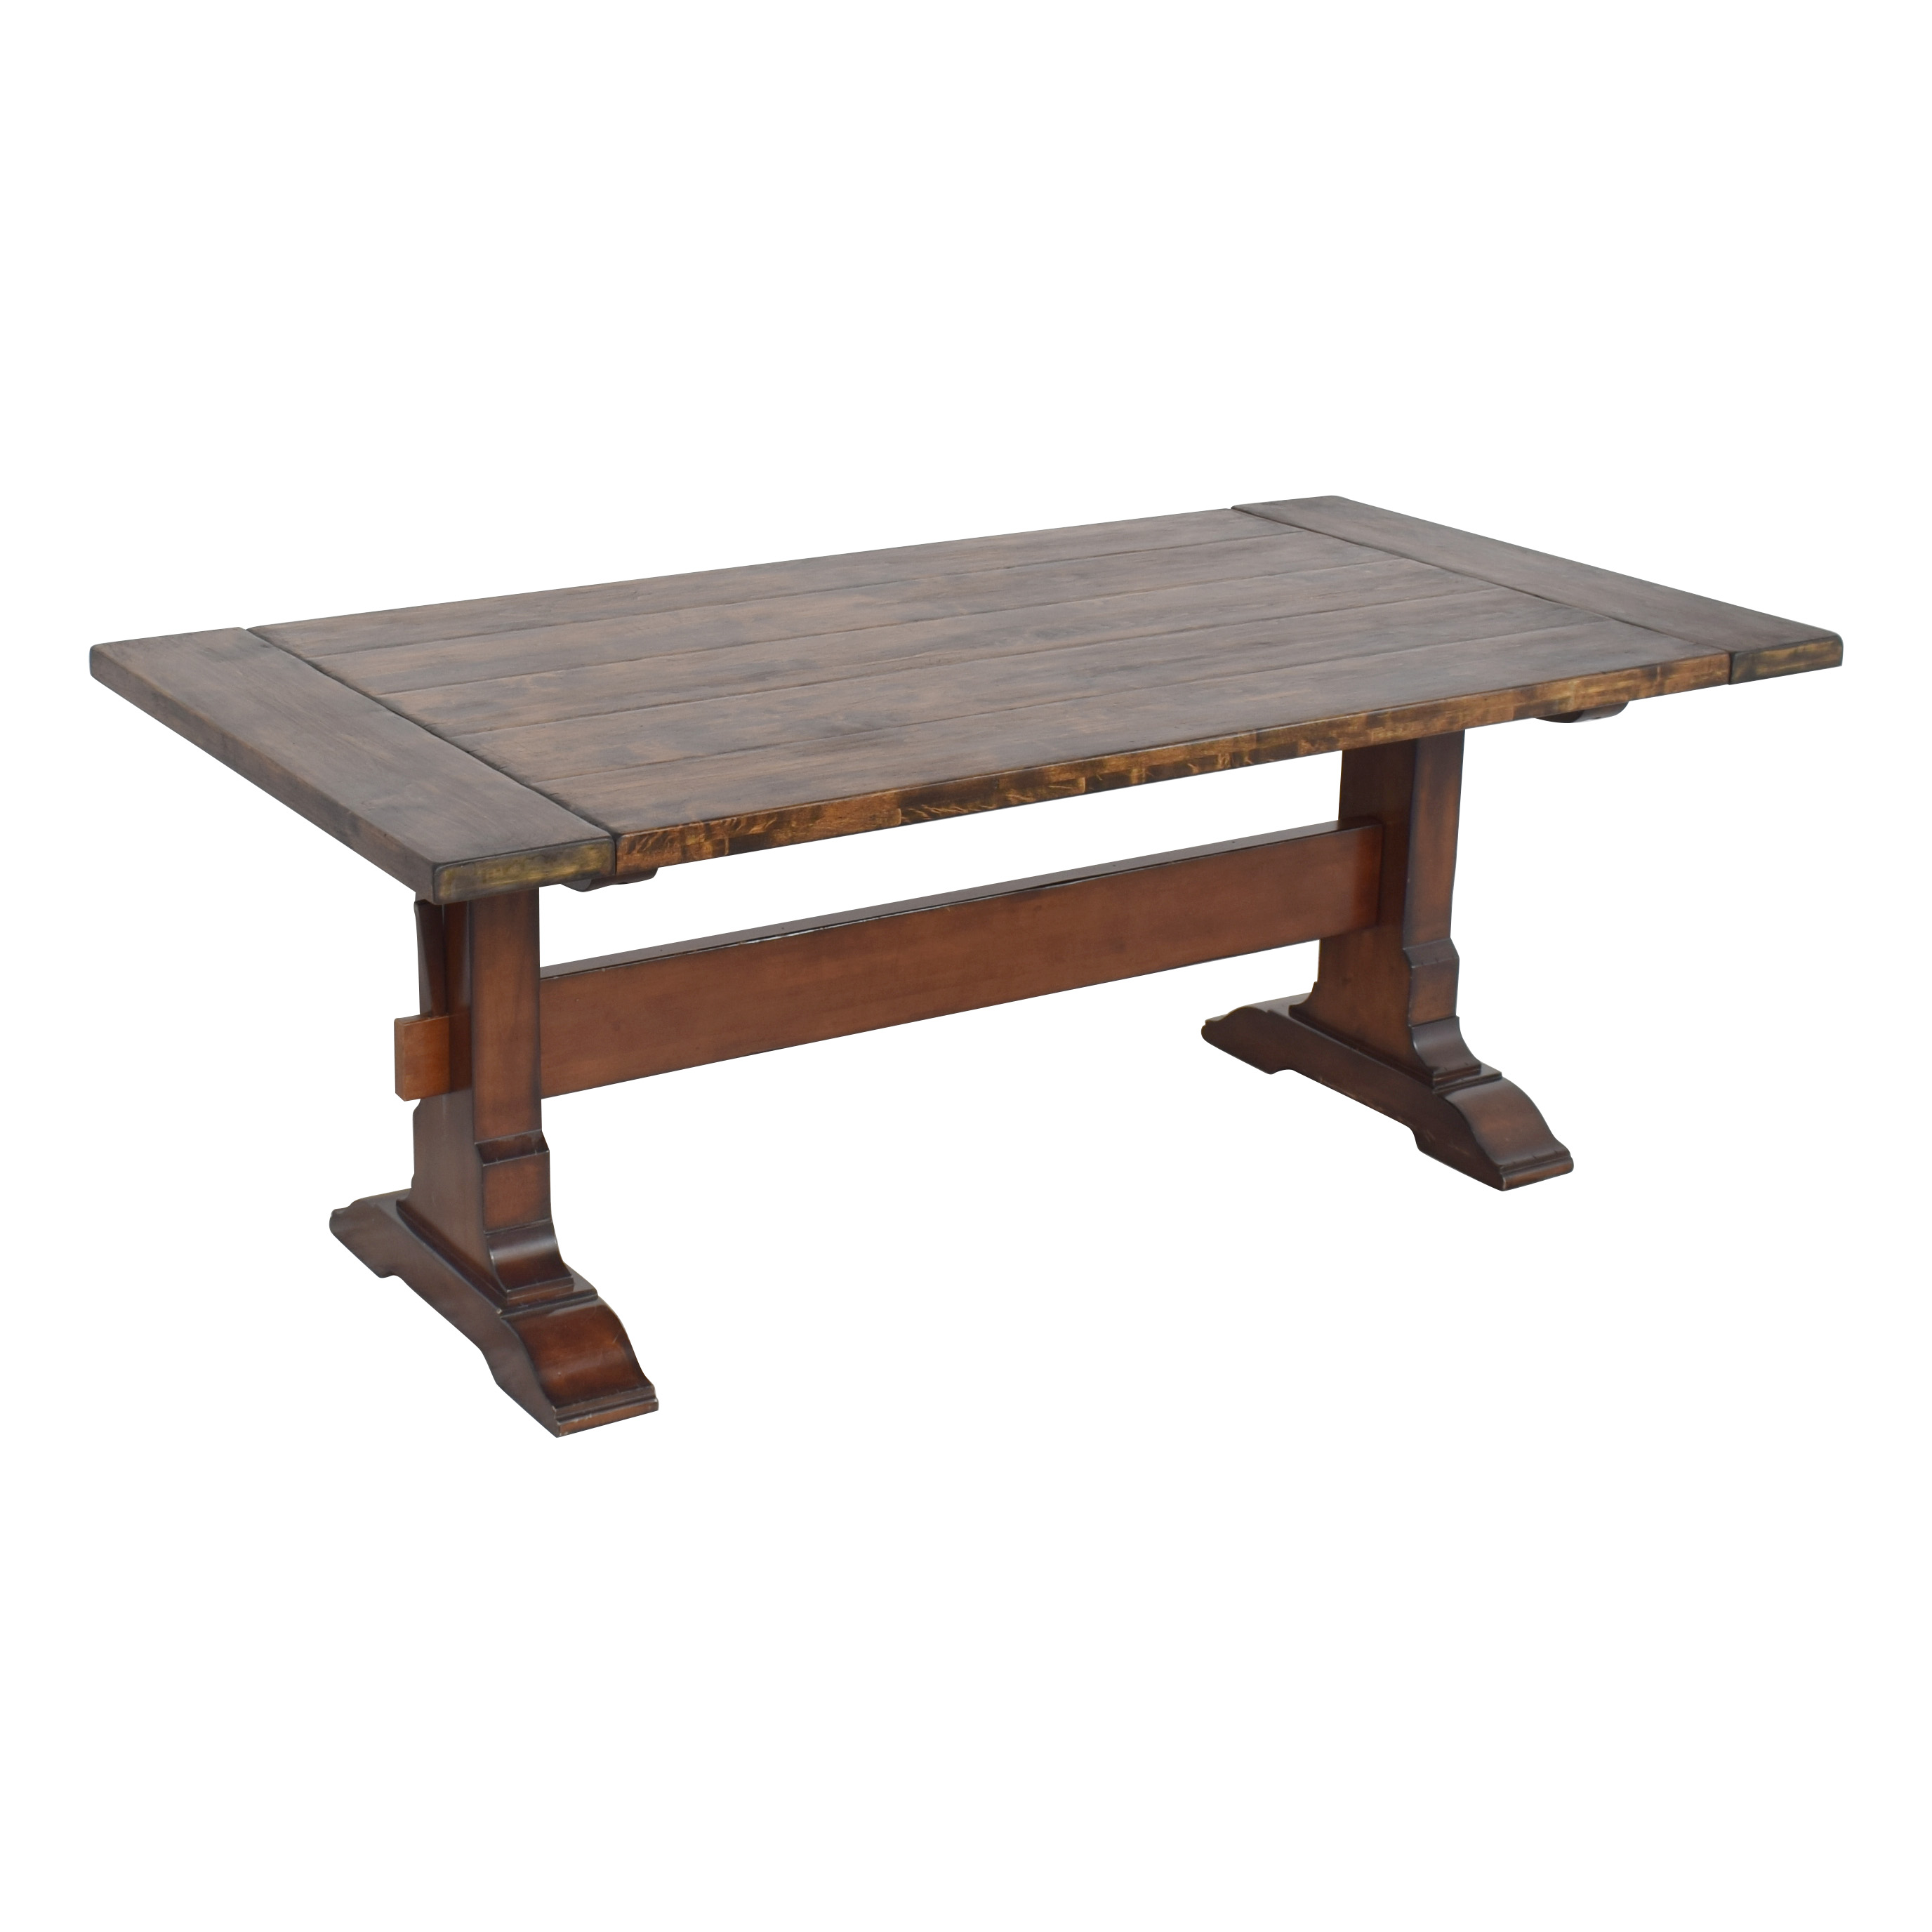 buy Pottery Barn Pottery Barn Trestle Dining Table online